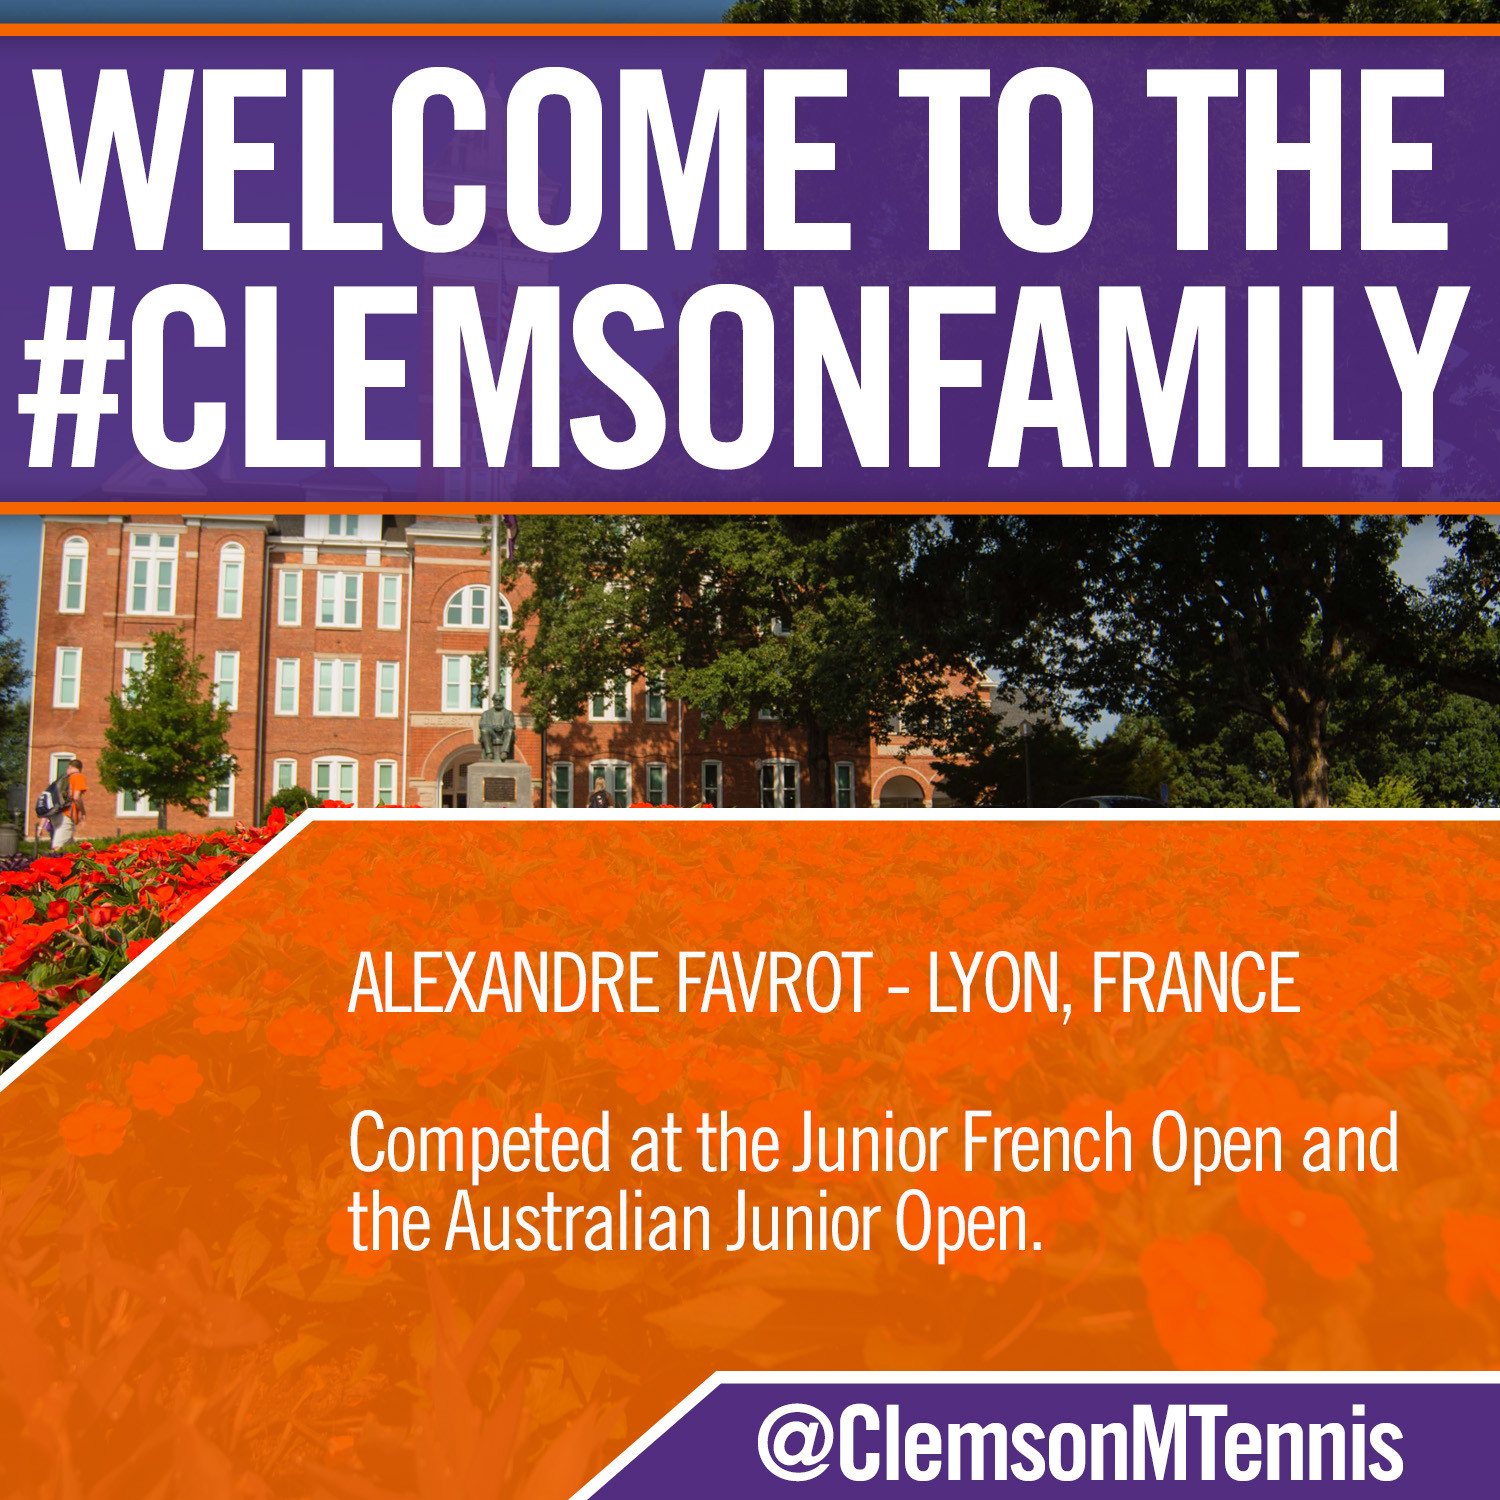 Tigers Add Alex Favrot to 2015-16 Class